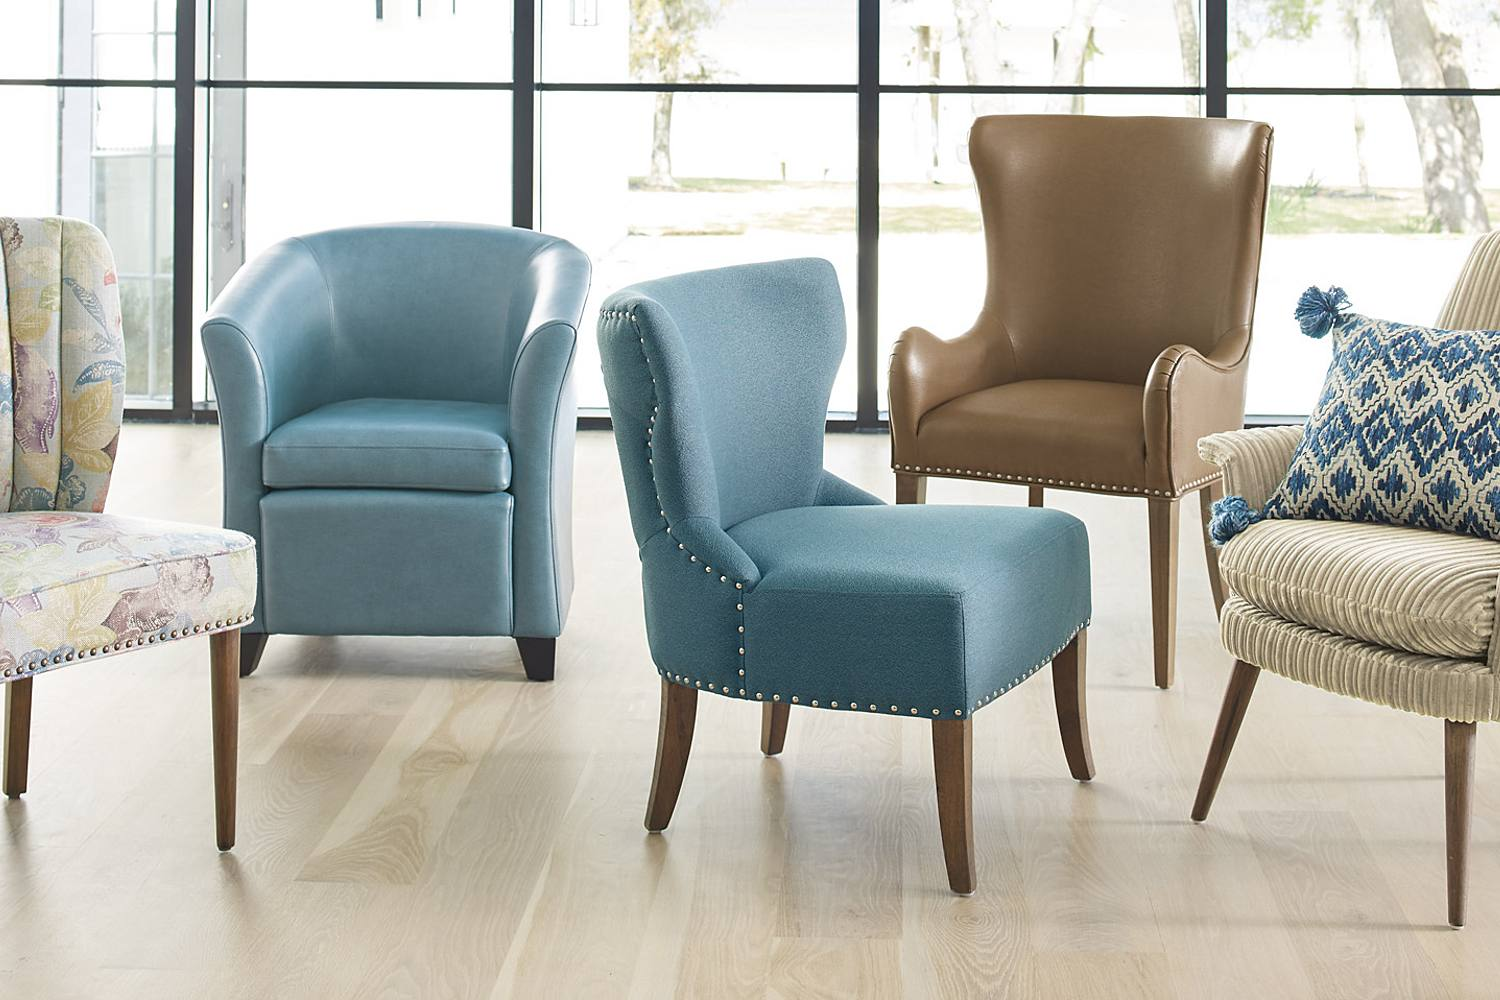 Brilliant 7 Reasons To Love Our 299 Accent Chairs Grandin Road Blog Machost Co Dining Chair Design Ideas Machostcouk